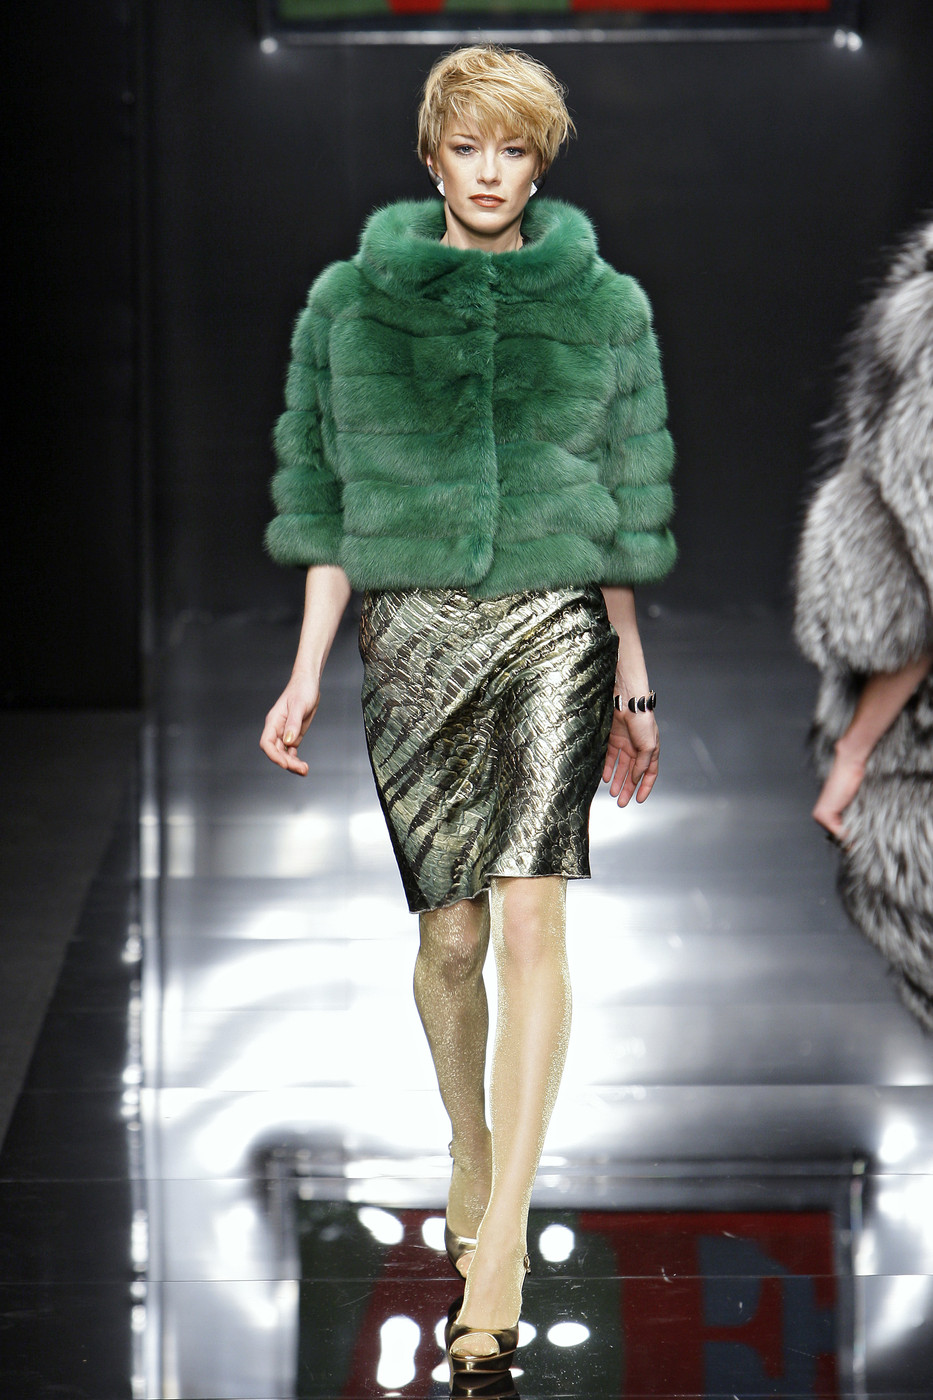 Carlo Tivioli at Milan Fashion Week Fall 2010